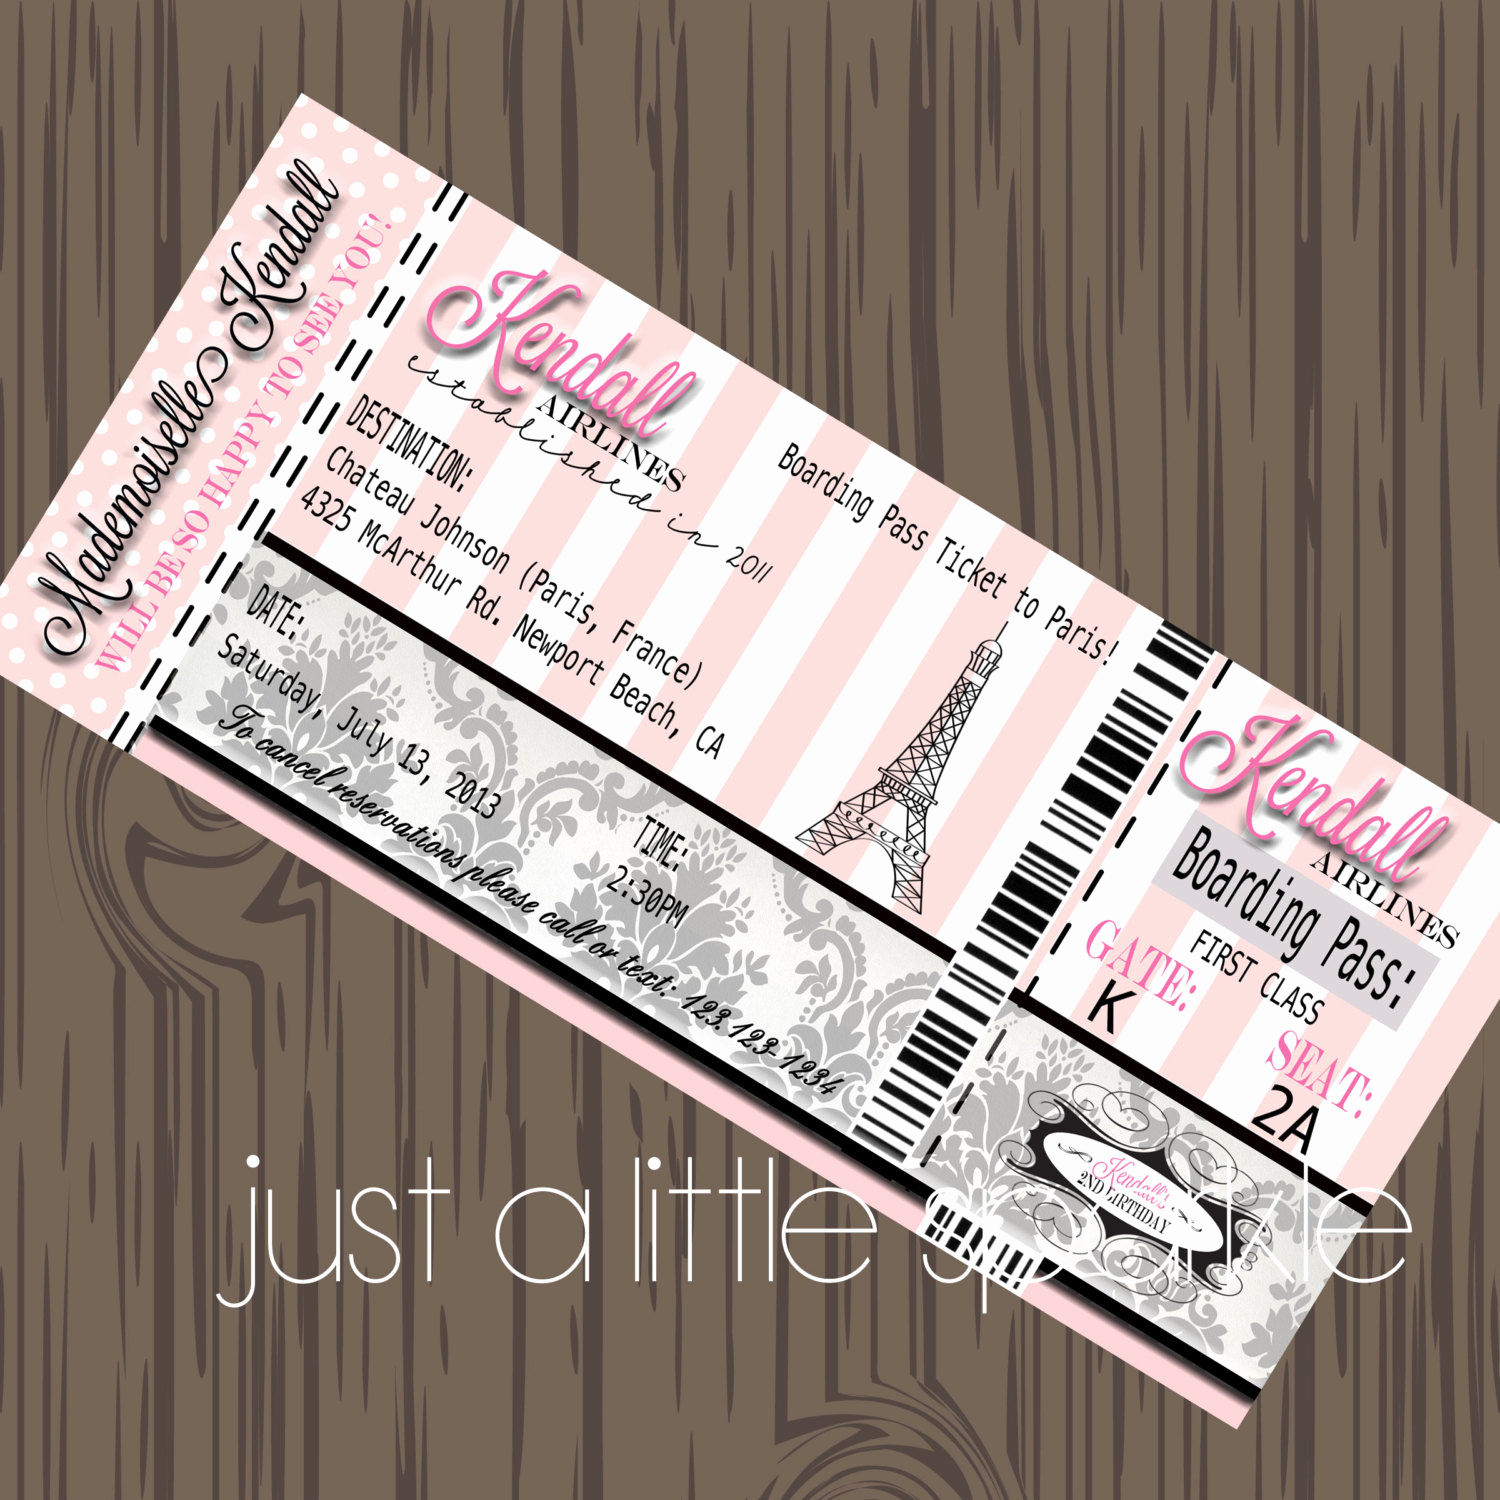 Diy Boarding Pass Invitation Awesome Paris Boarding Pass Invitation Diy Boarding Pass Invite